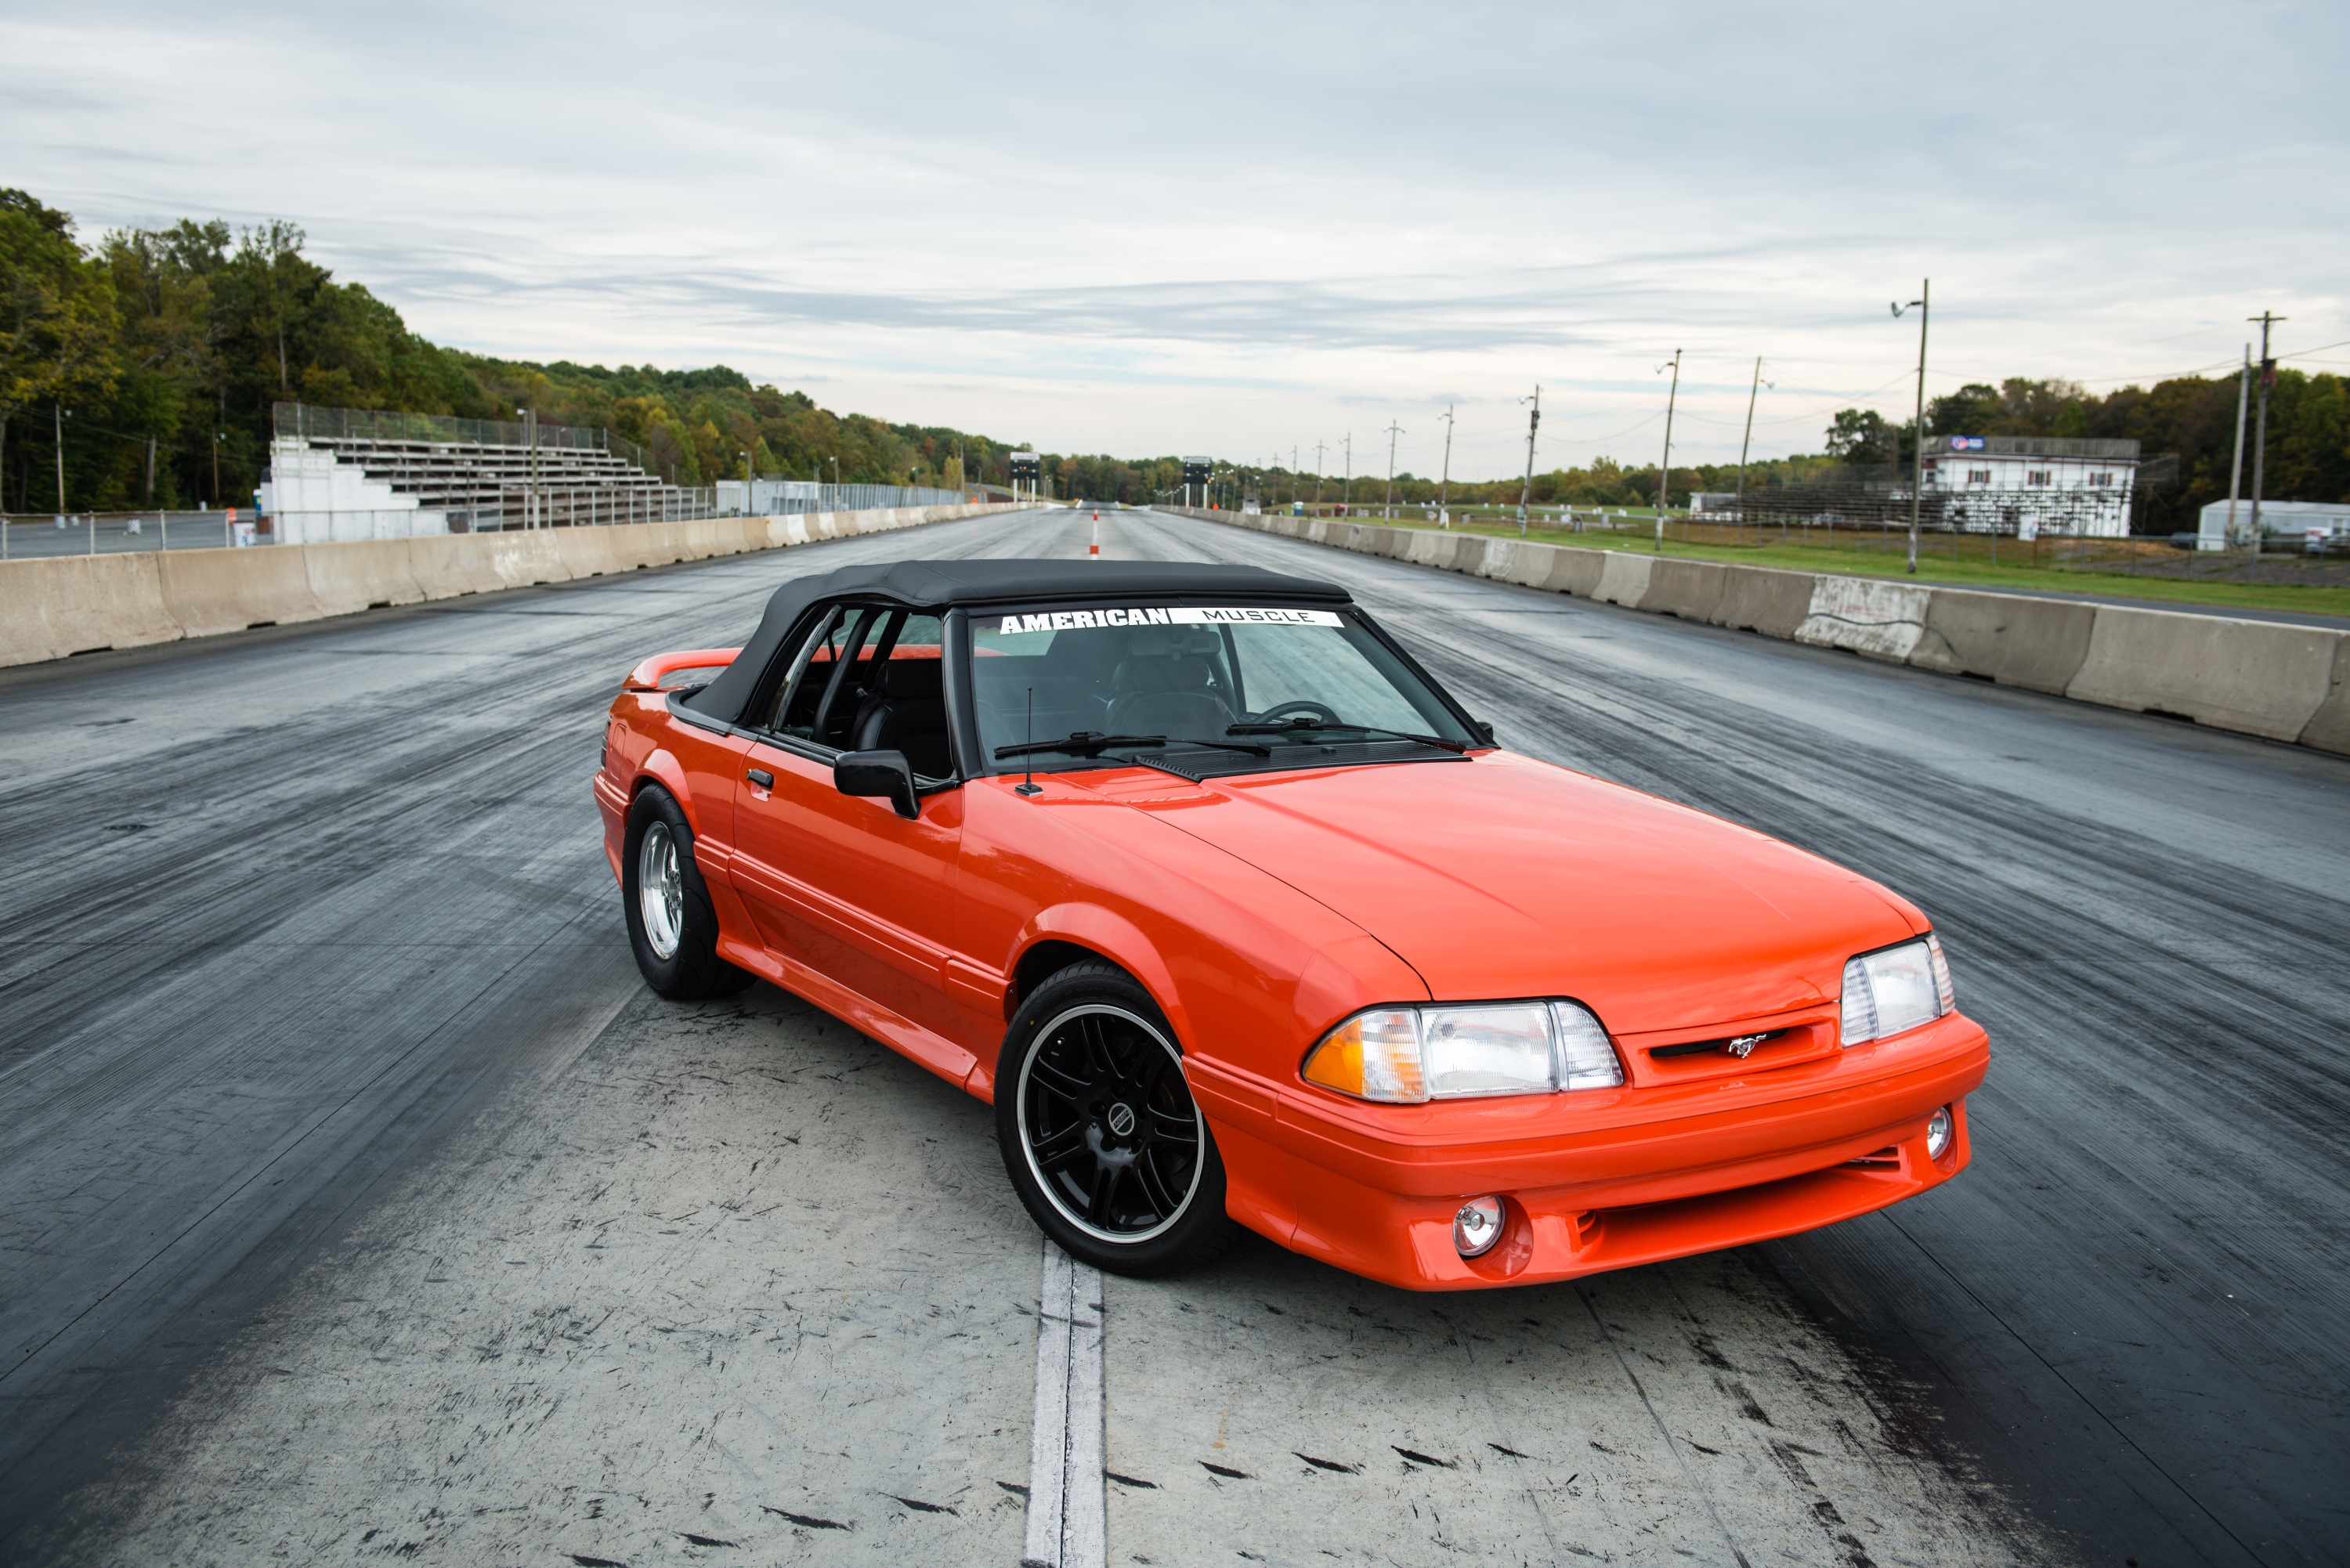 While the fox body mustang